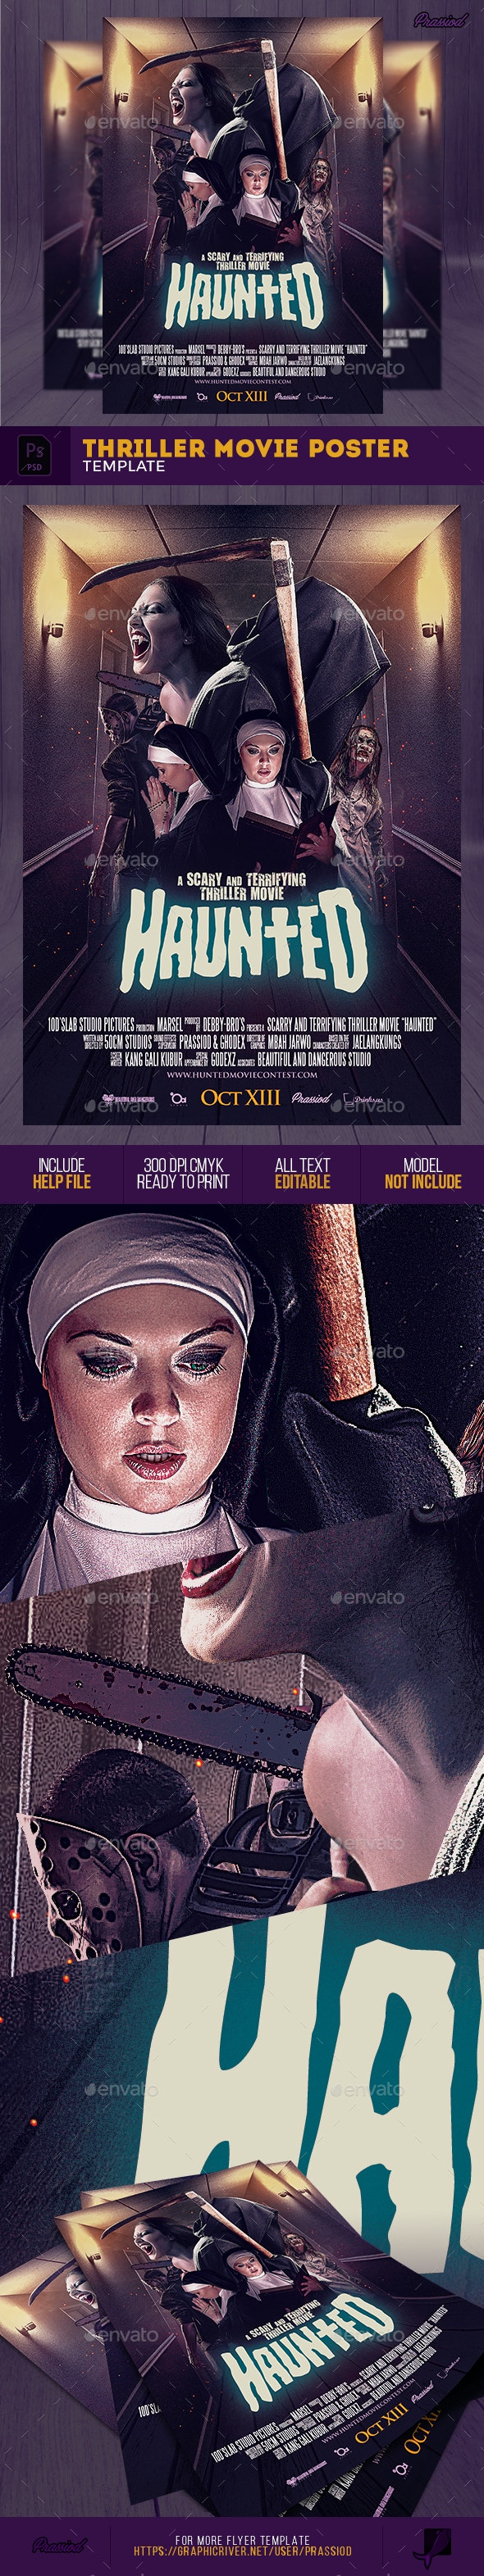 Thriller Movie Poster Template - Events Flyers